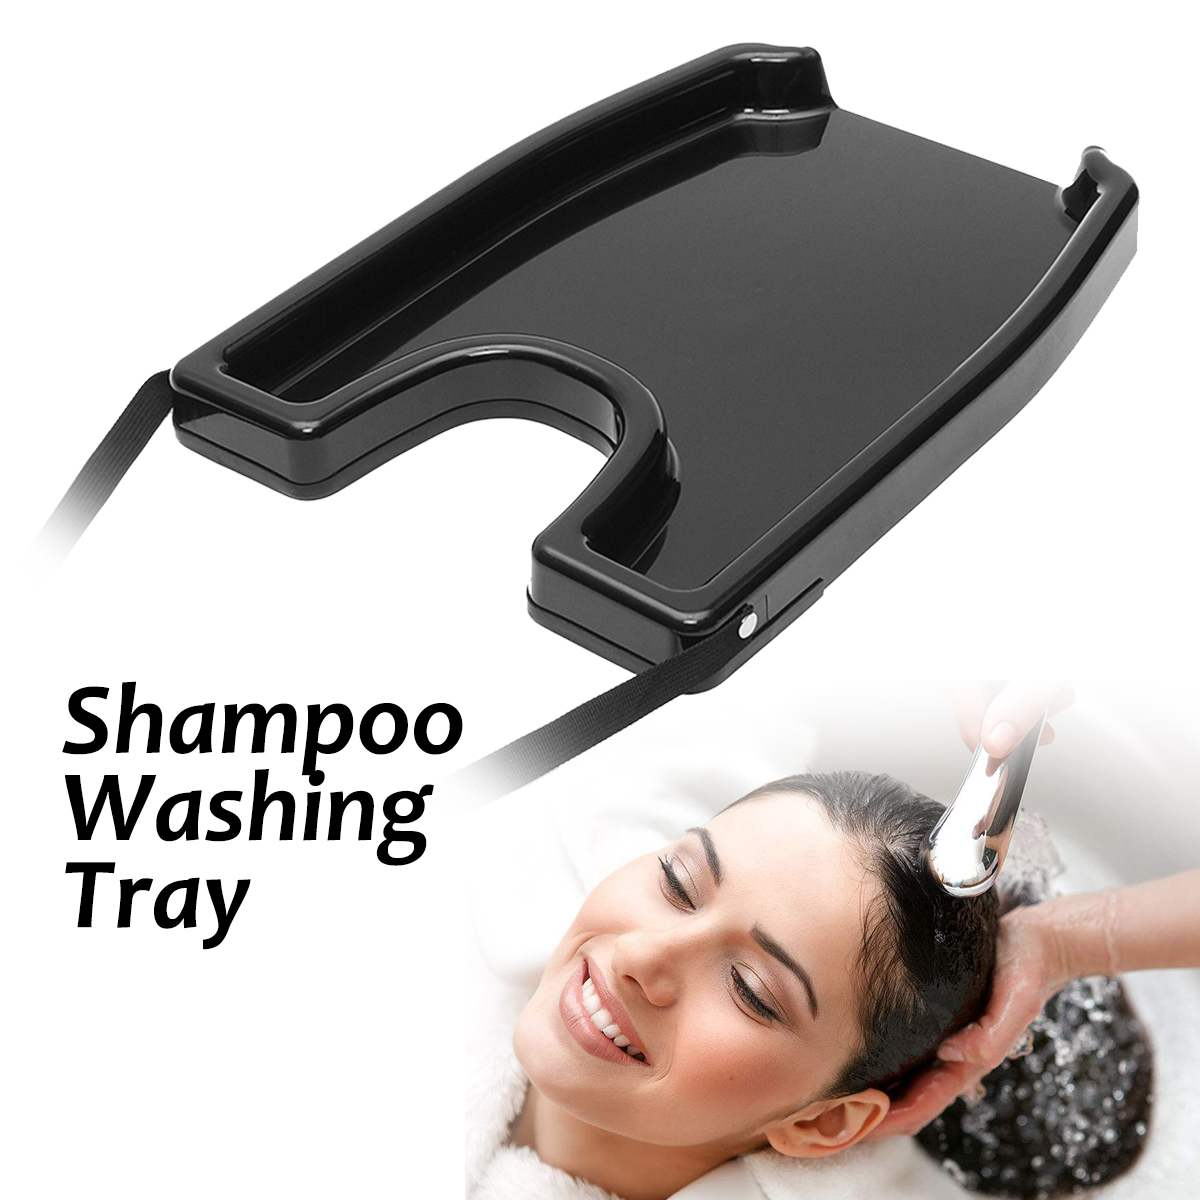 Portable Shampoo Tray Washing Hair Sink Basin For Patient Elderly Salon Treatment Home Medical Wash Hairdressing Hair Care Tool